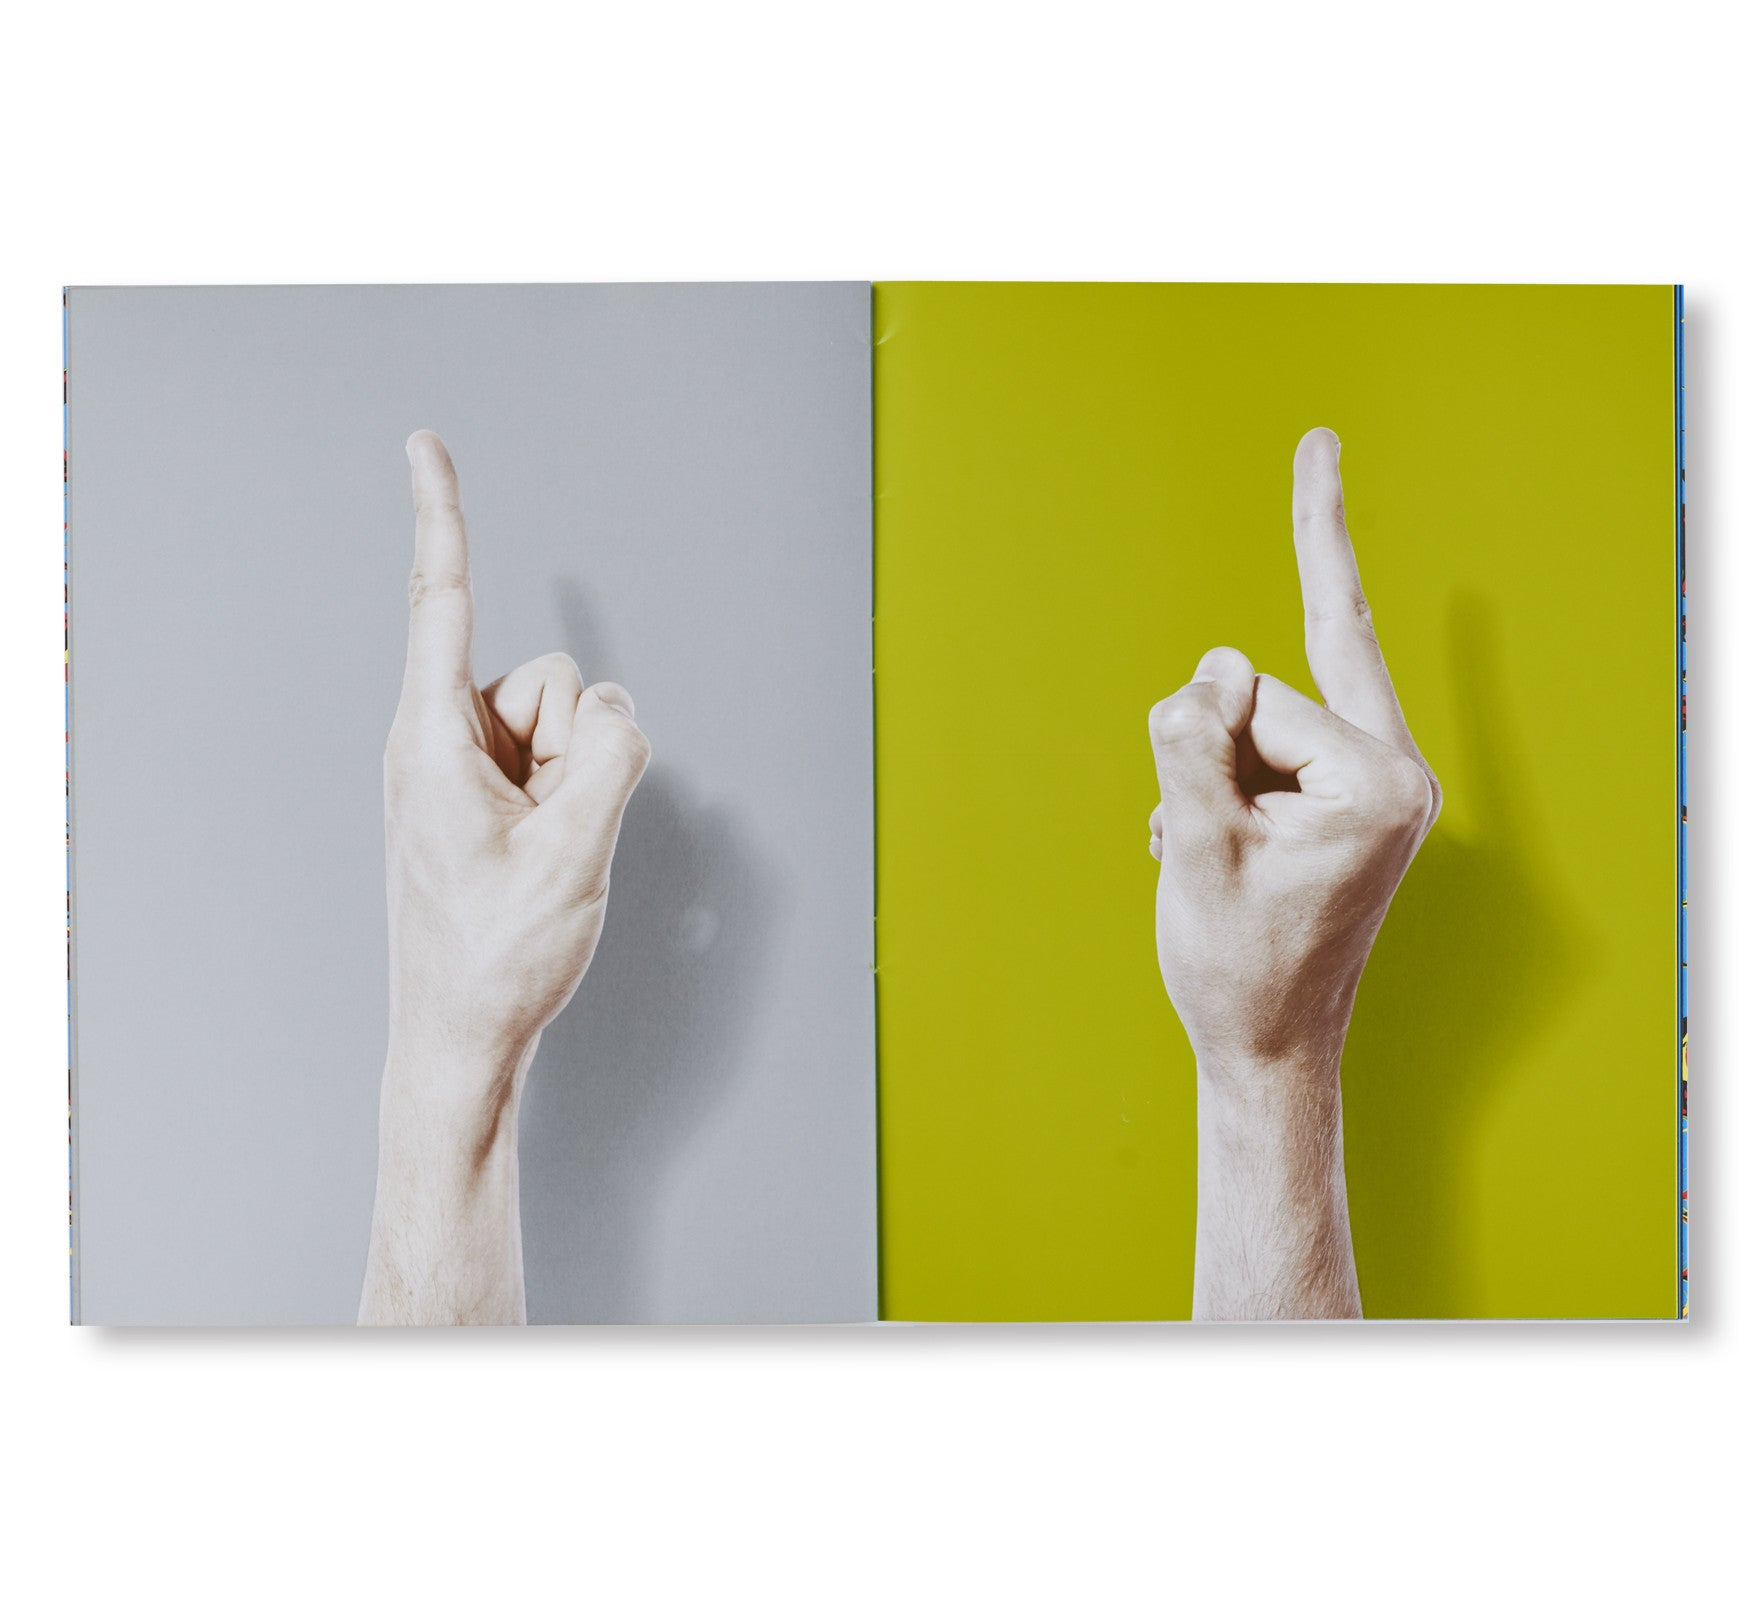 FEELING WITH FINGERS THAT SEE by Stuart Whipps